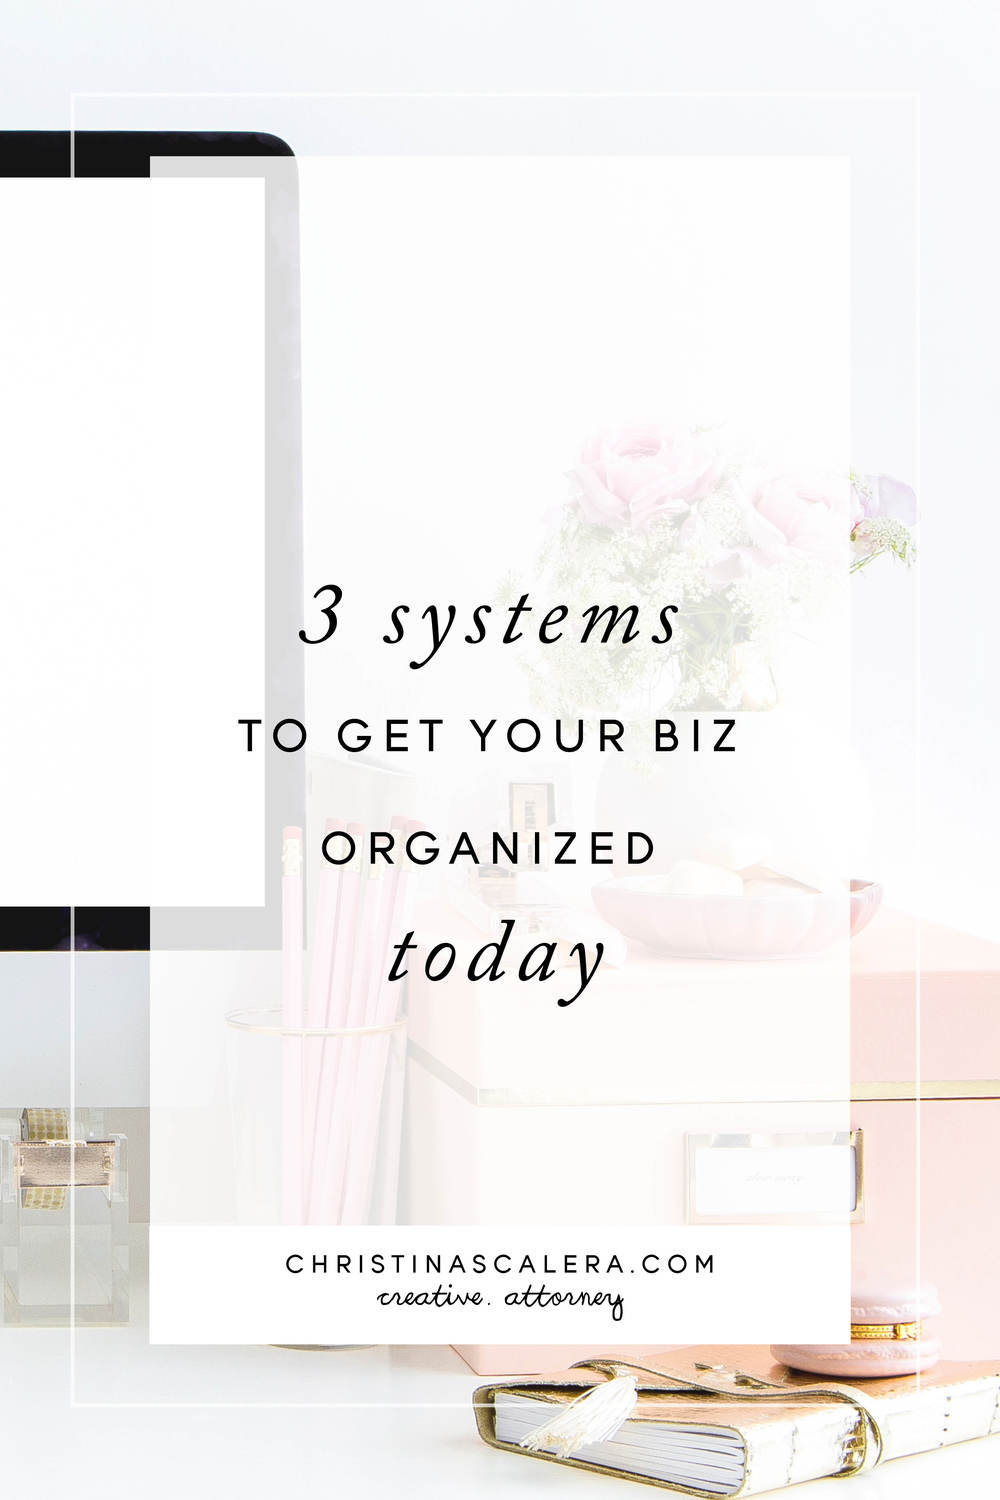 3 Systems to get your business organized today!